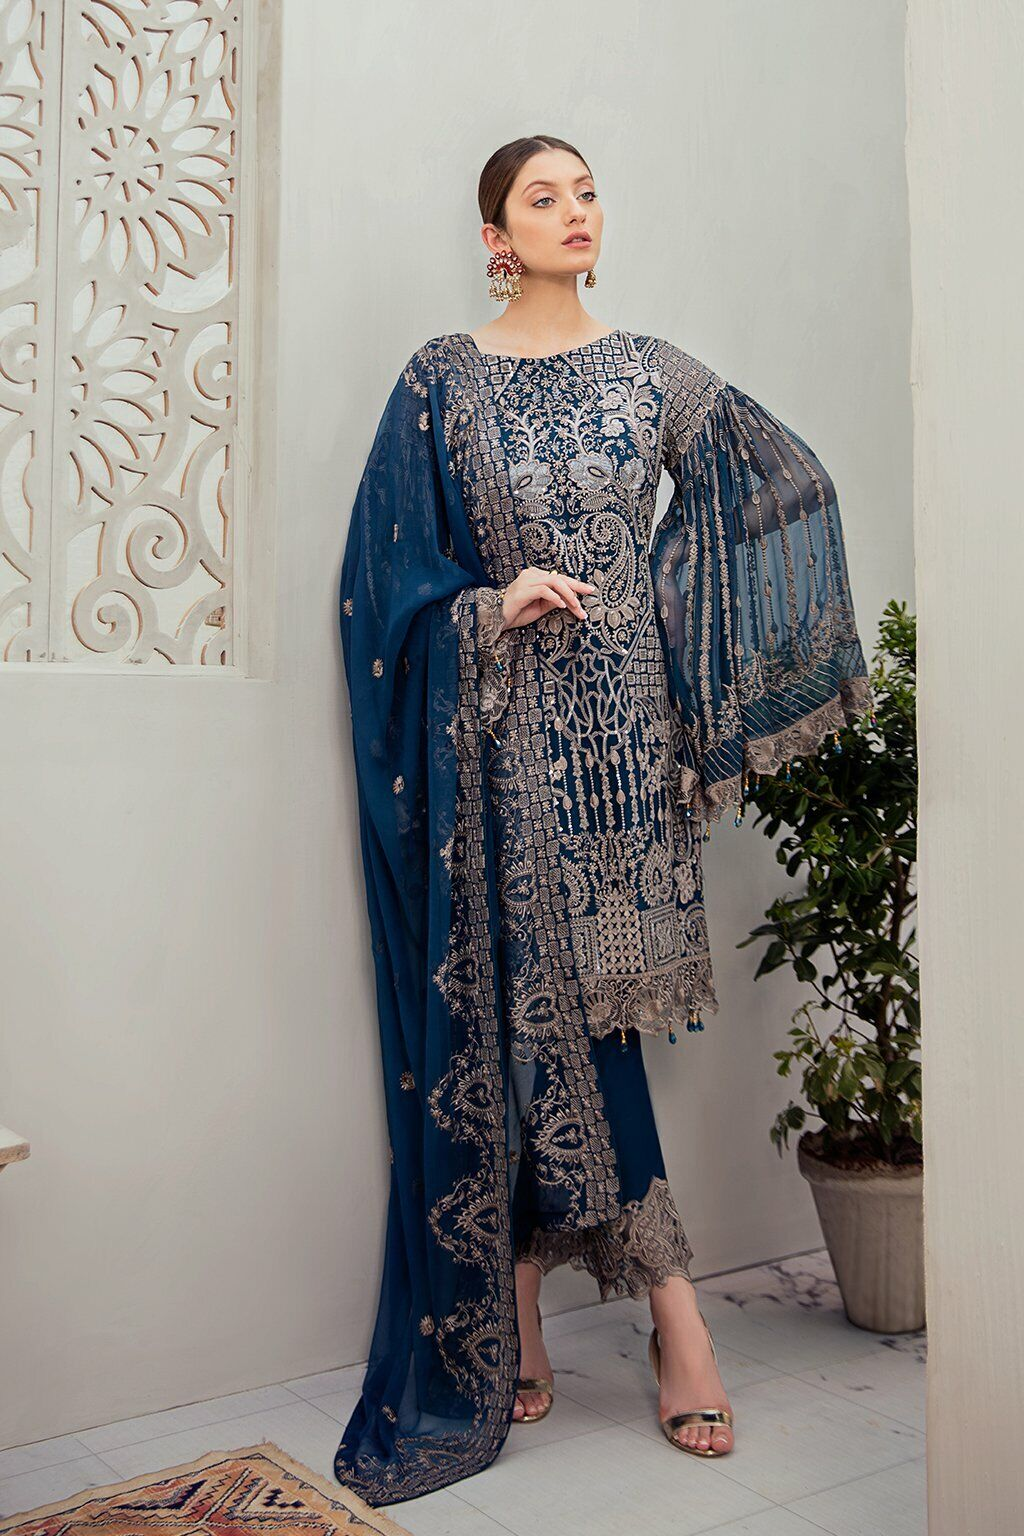 Blue Ladies Stitched Shalwar Kameez 3 piece suit Gift for her embroidery work